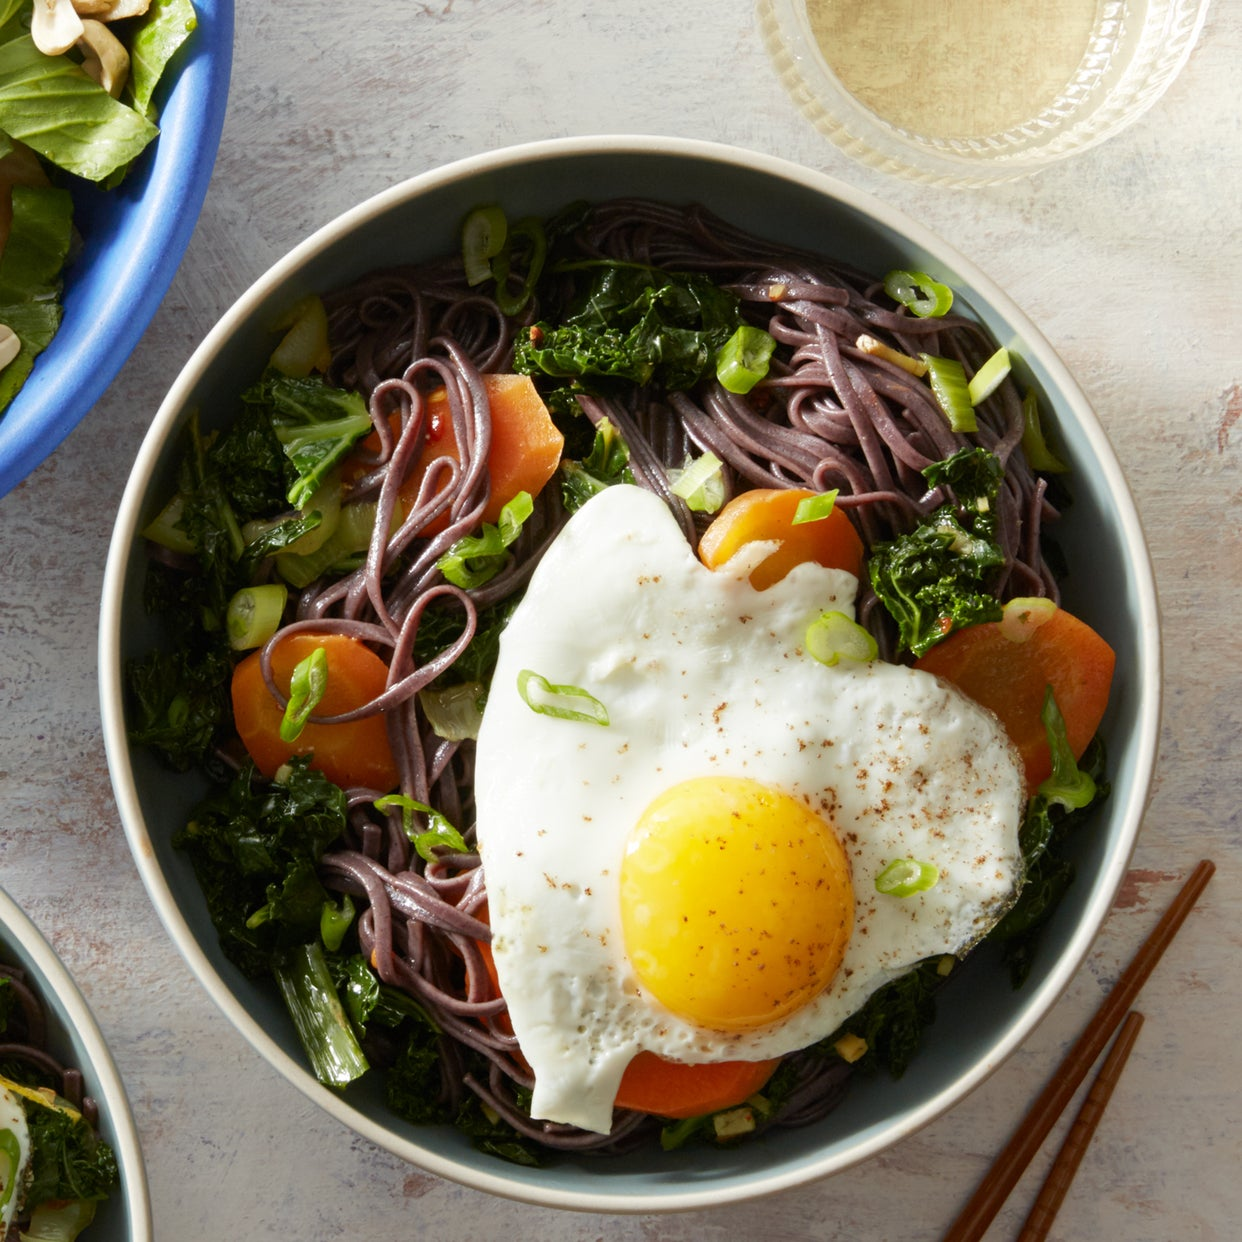 Black Rice Sesame Noodles with Beet, Bok Choy, & Peanut Salad